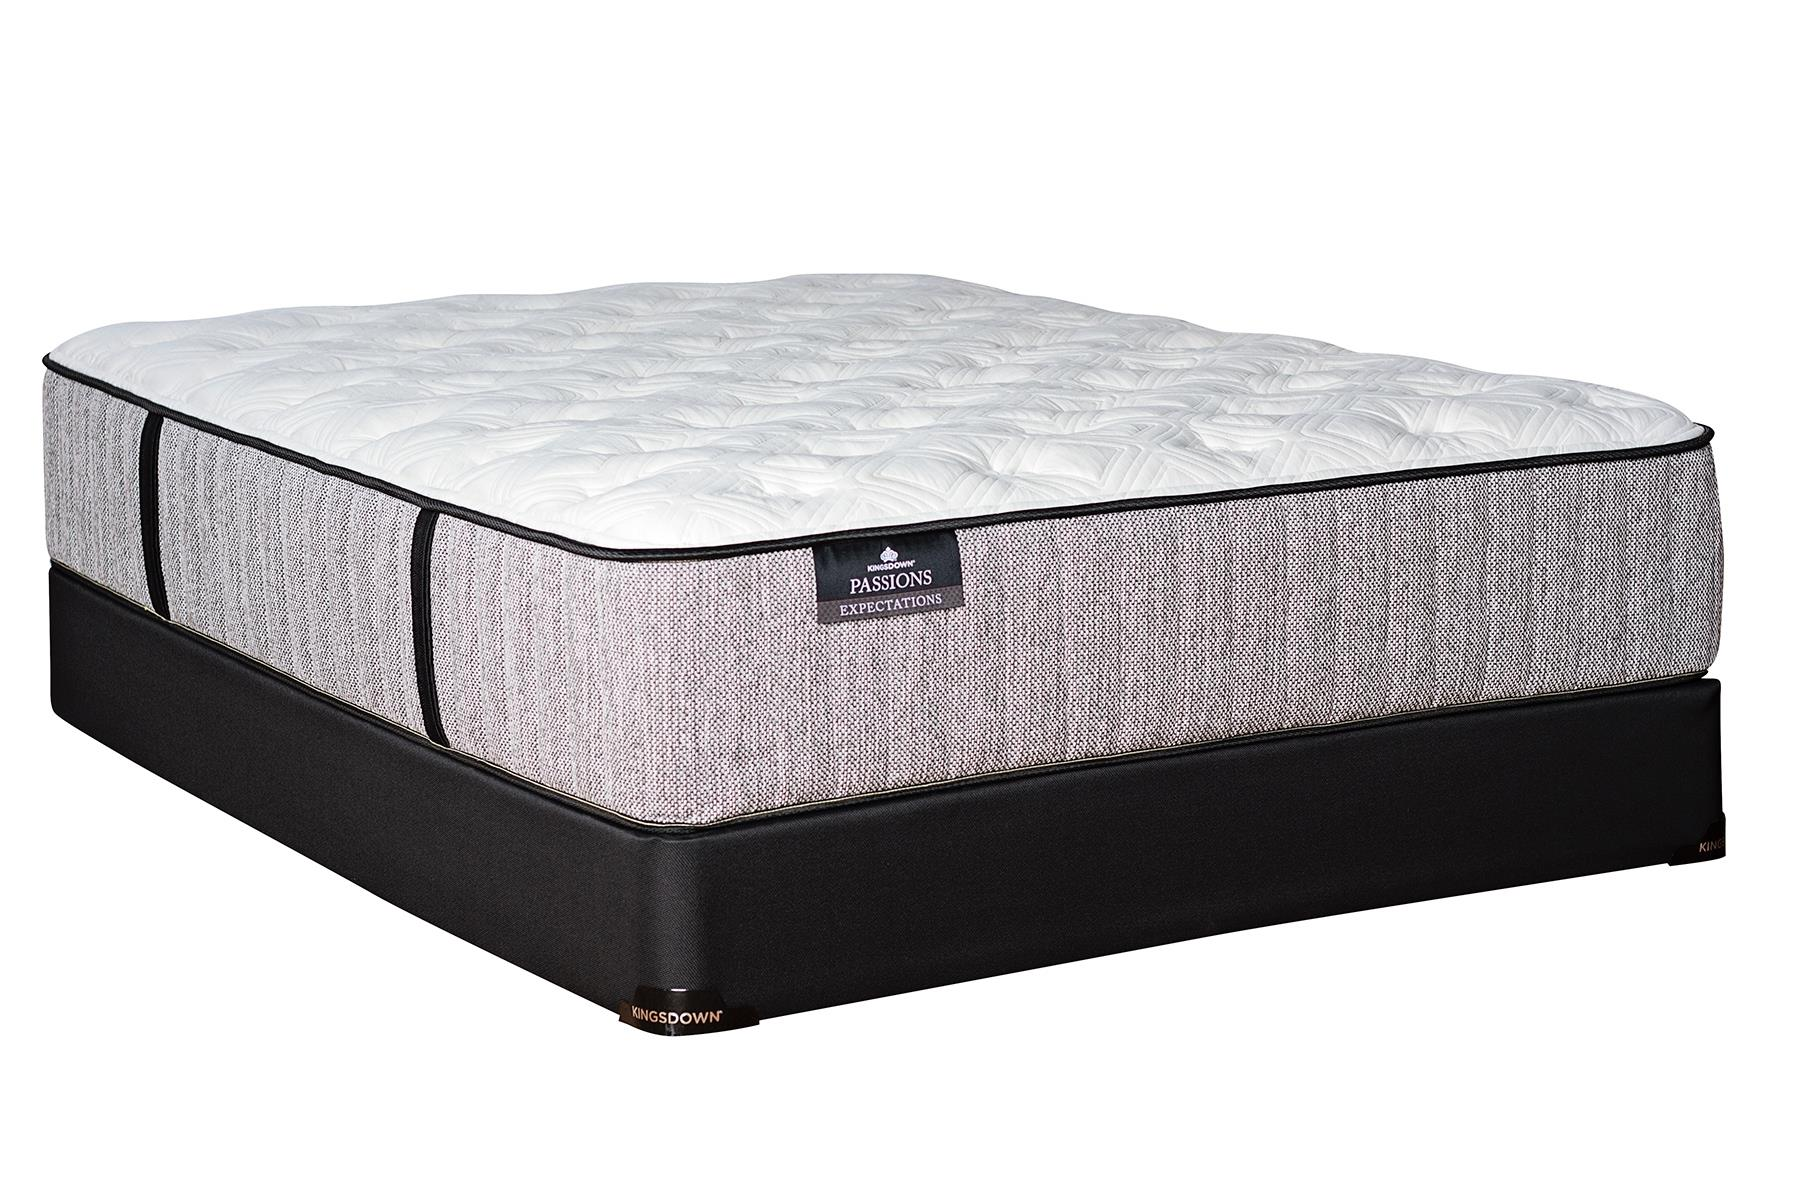 Kingsdown Passions Expectations Twin XL Plush Mattress Set with Gel Memory F - Item Number: 1220Plush-TXL+1128SFH-TXL